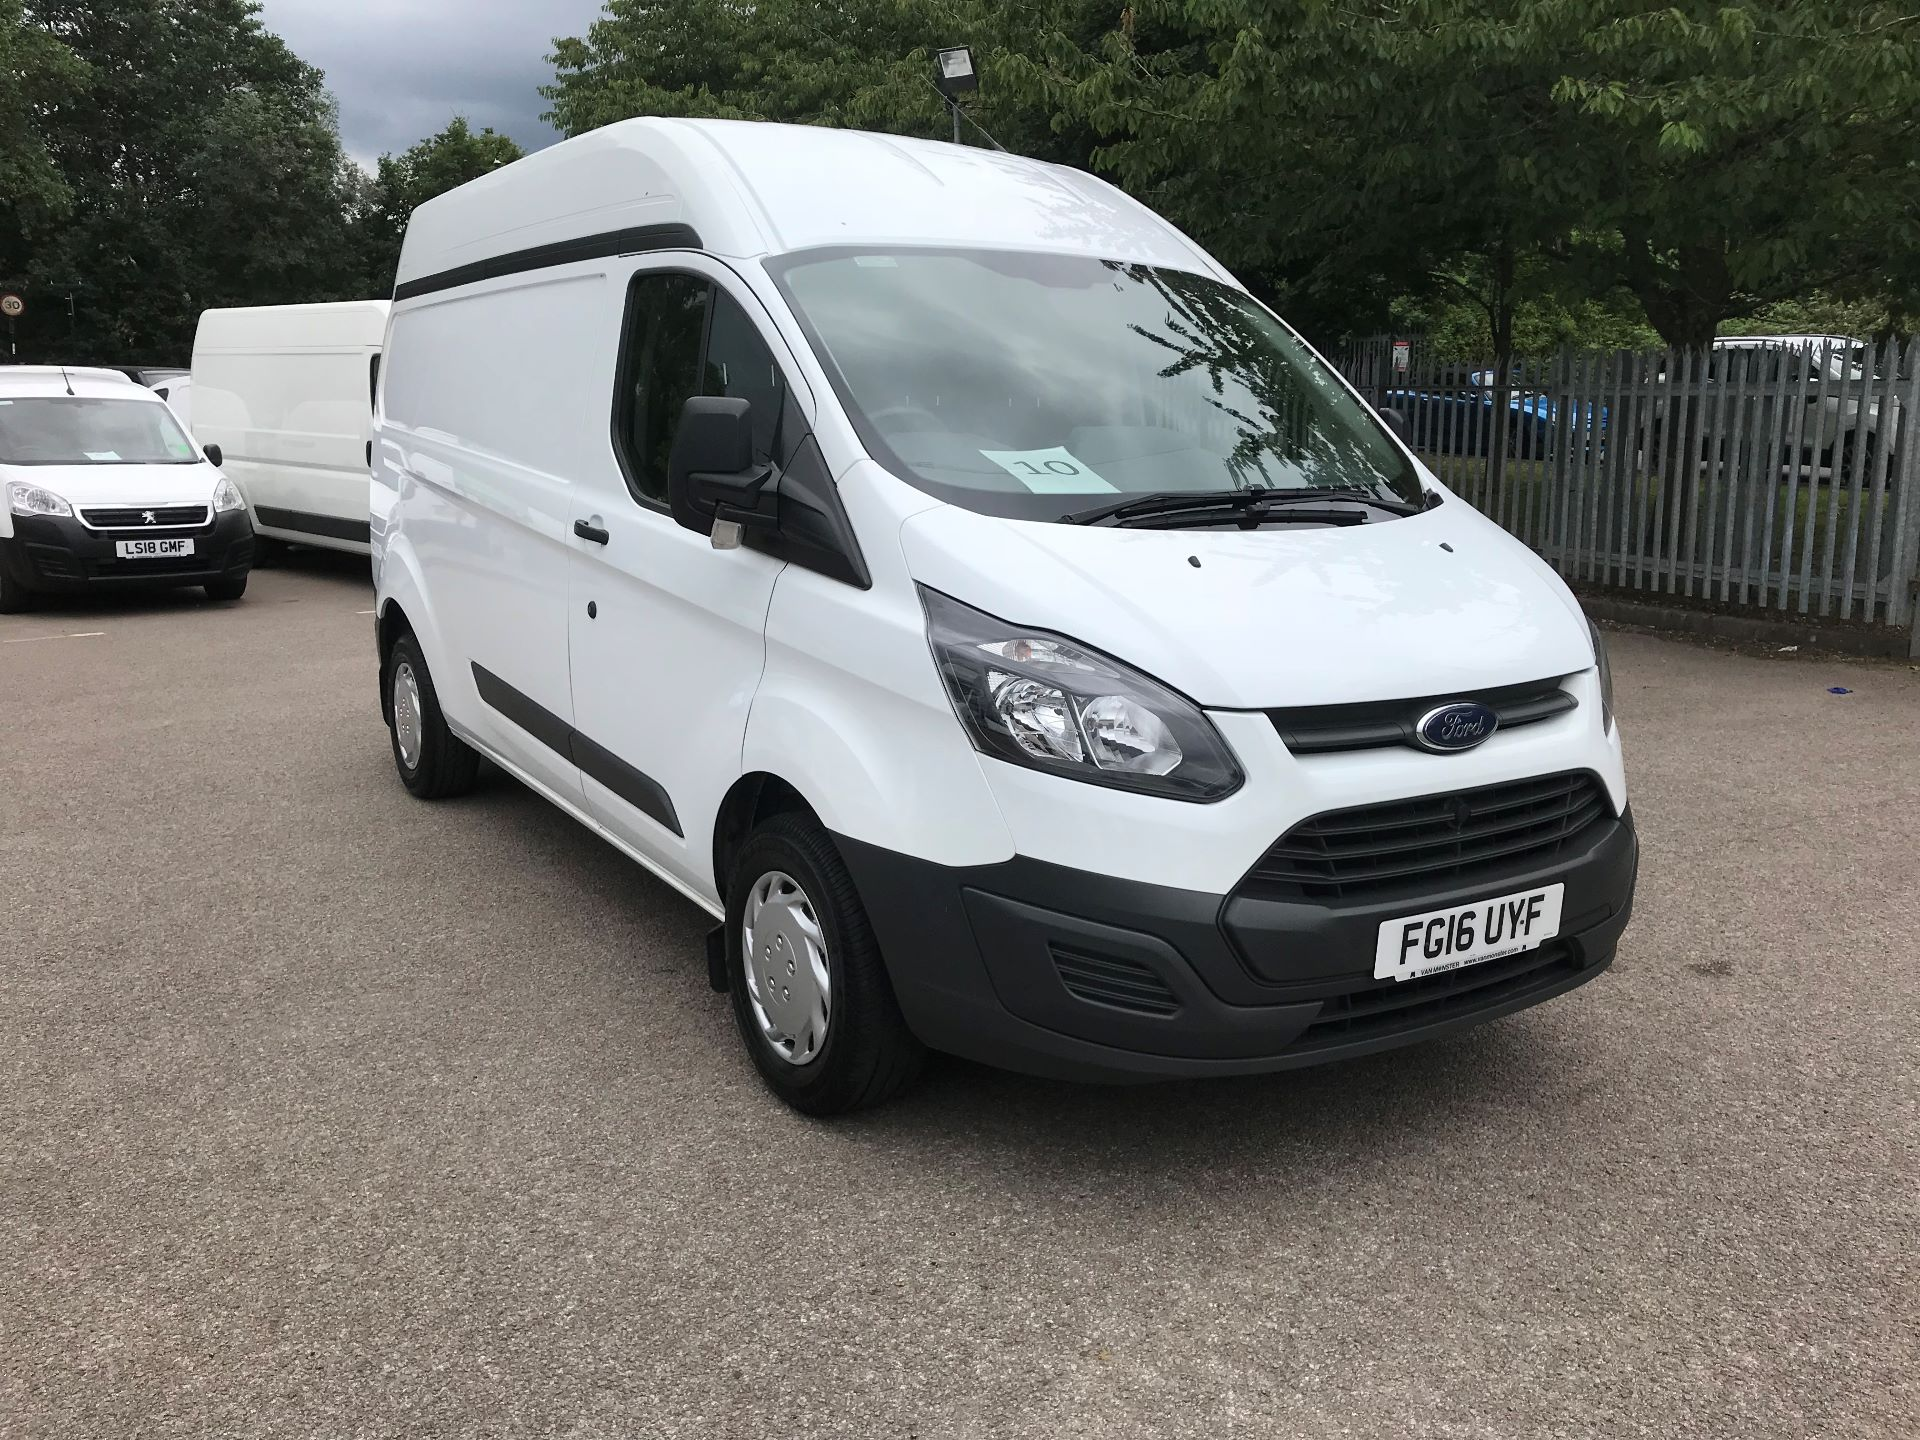 2016 Ford Transit Custom 290 L2 DIESEL FWD 2.2 TDCI 100PS HIGH ROOF VAN EURO 5 (FG16UYF)